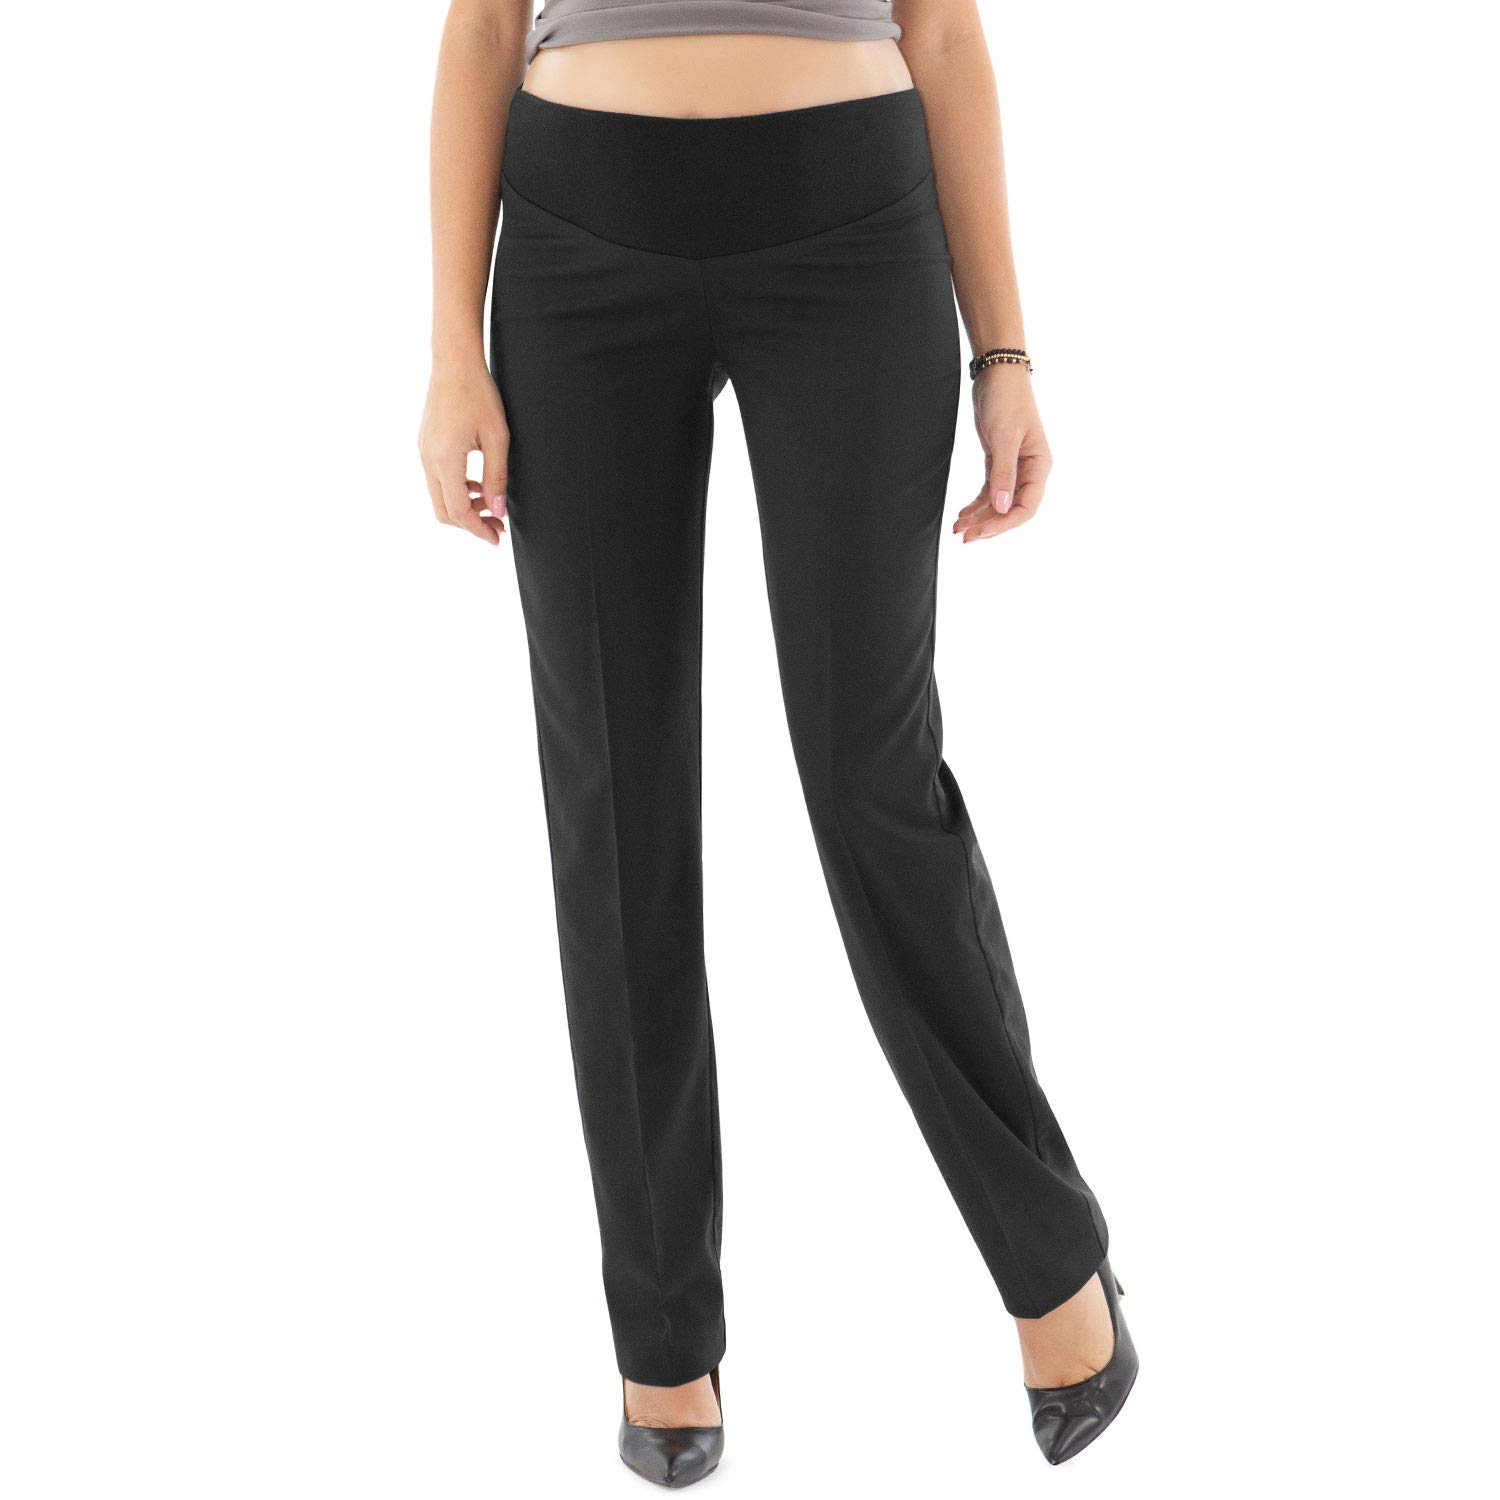 Elegant Maternity Pants, for Office or Events - Made in Italy (XL, Black) by MAMAJEANS